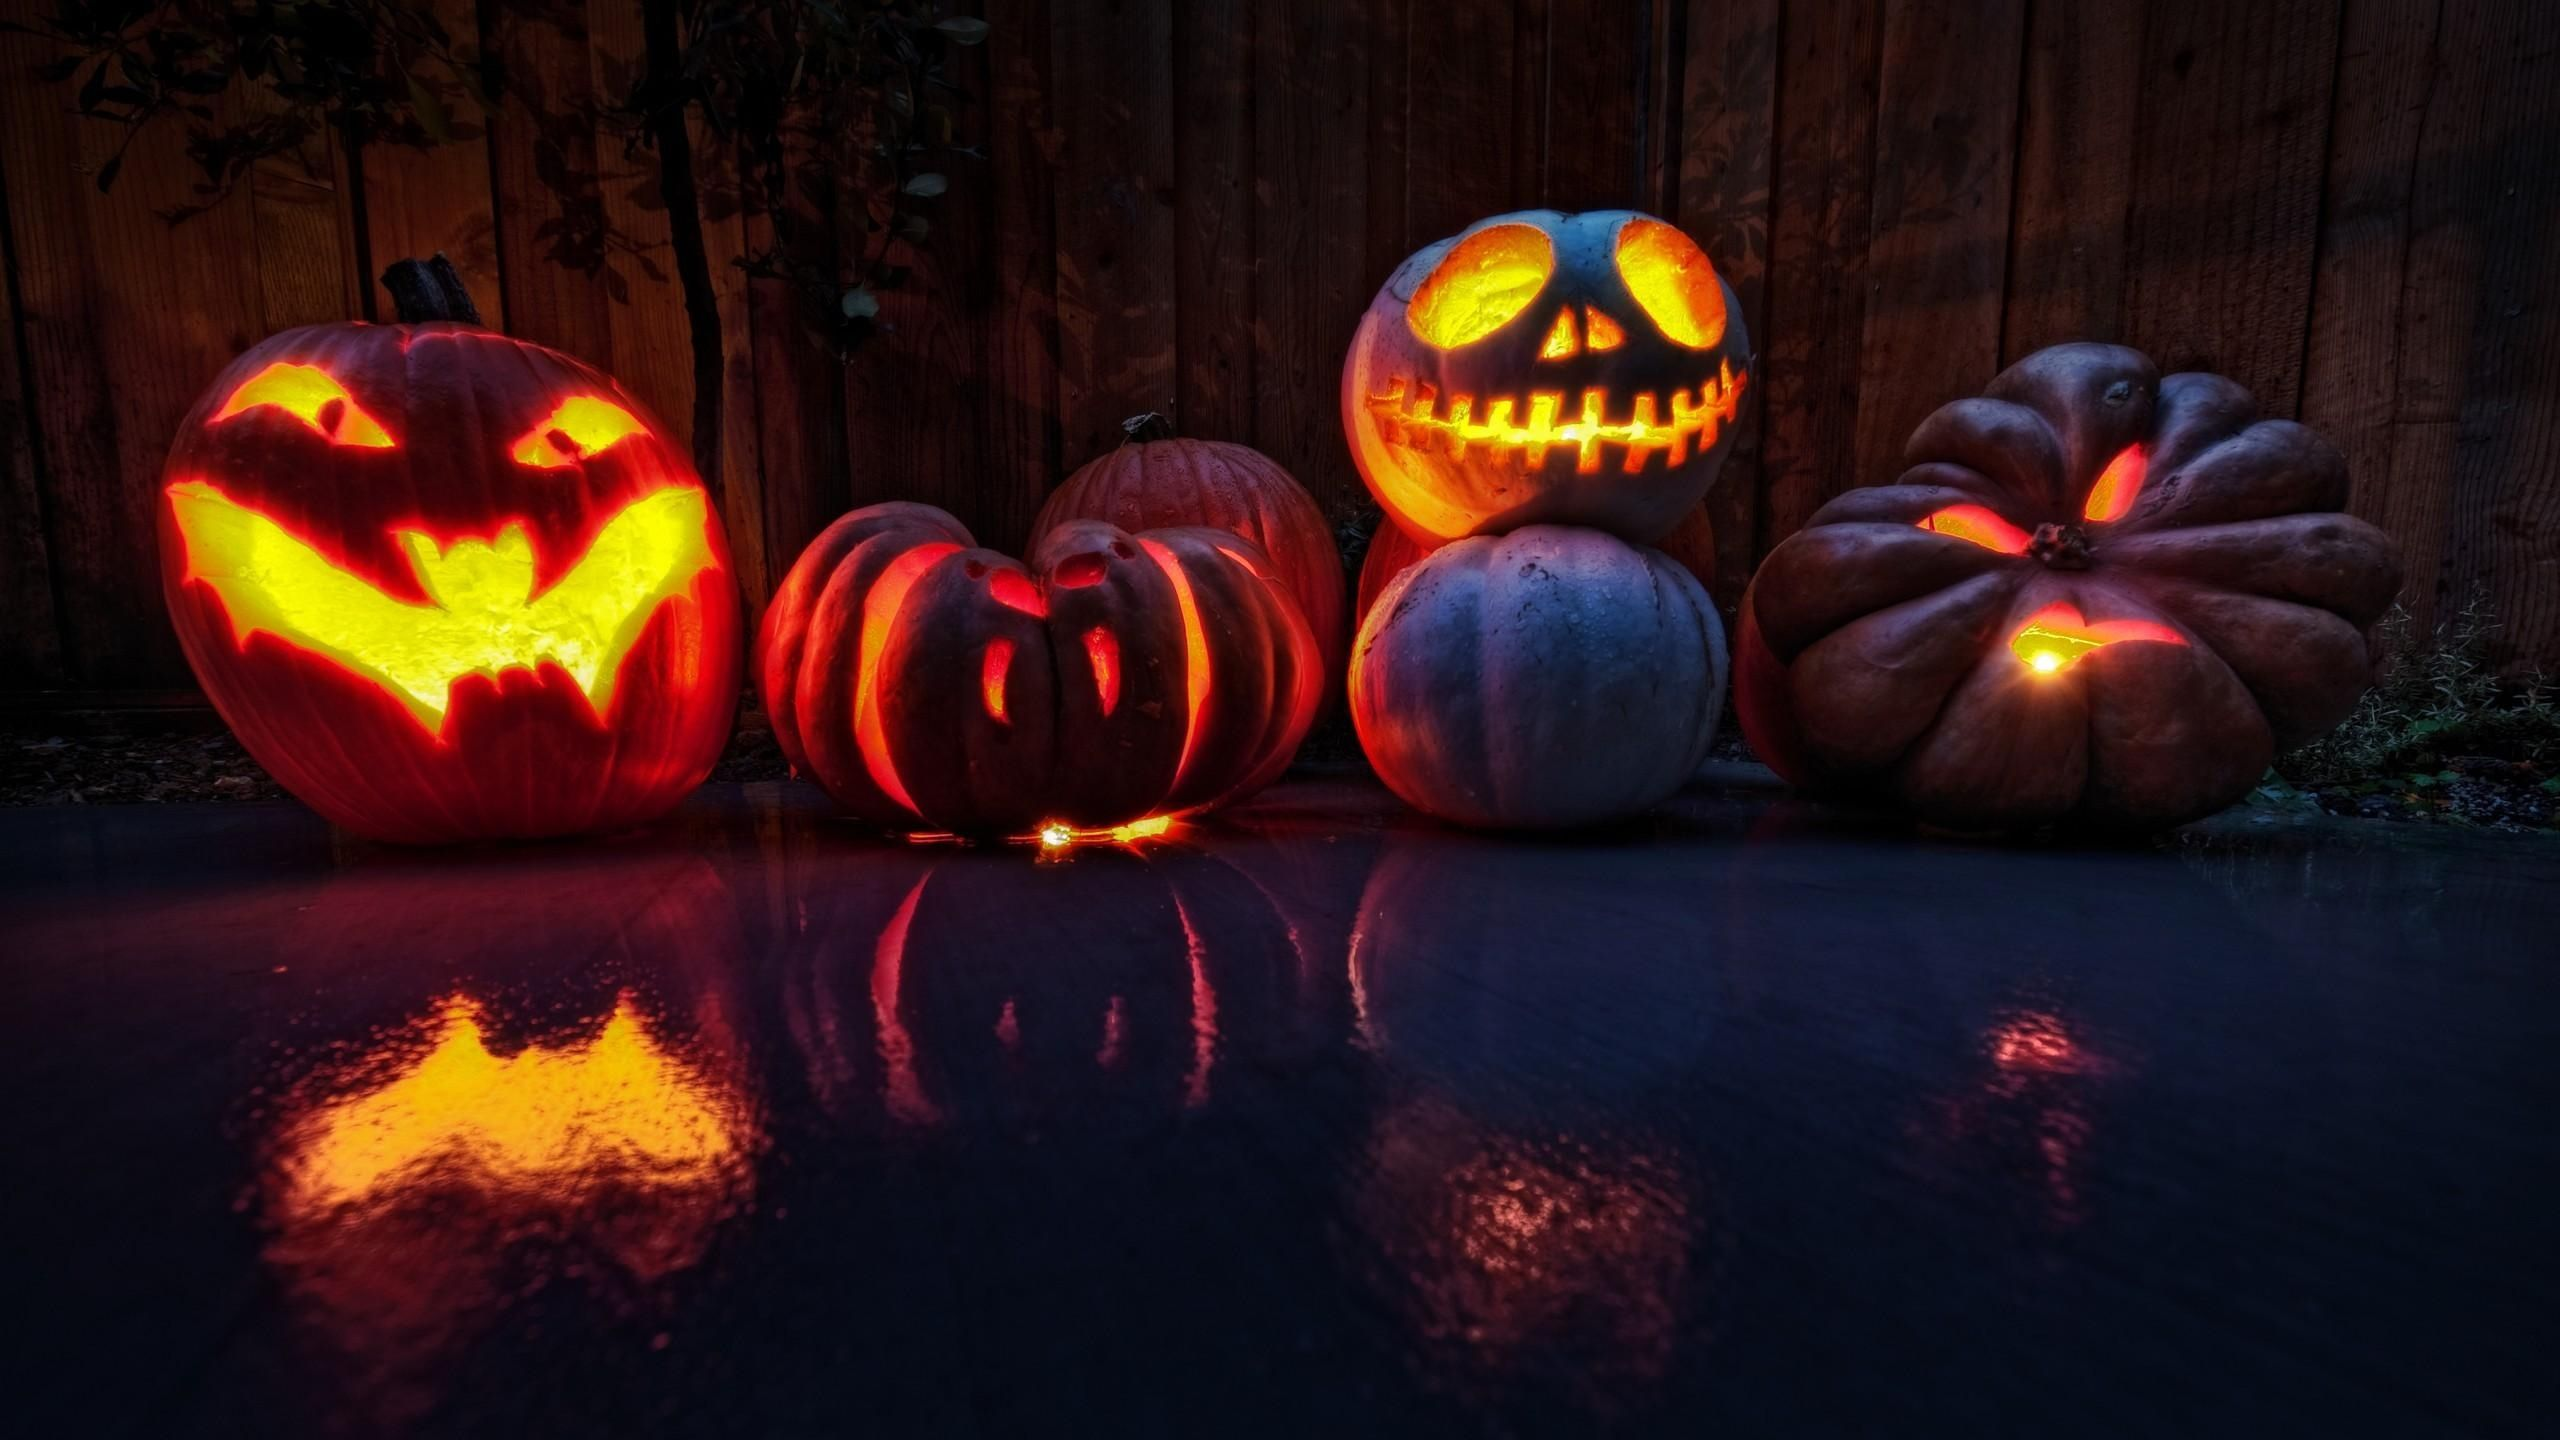 Halloween Wallpaper For Mac Halloween Live Wallpaper Halloween Desktop Wallpaper Halloween Wallpaper